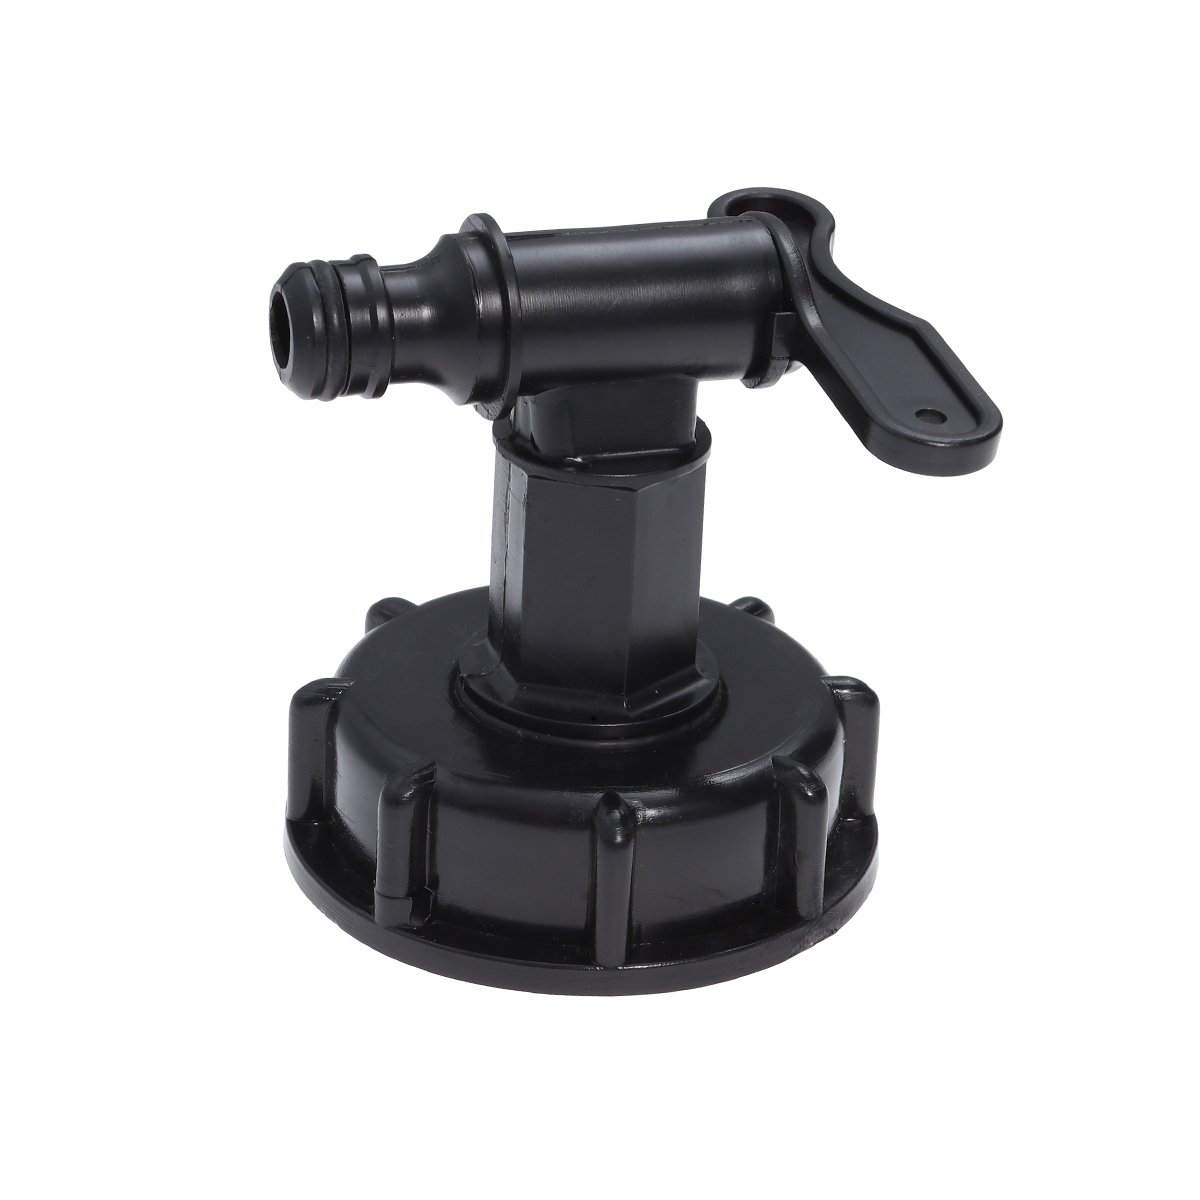 schwarz OUNONA IBC Tank Adapter Faucet Water Drain Tap To 15/ mm Thread Water Tank Yard Garden Tap Adapter-VENTIL SCHLAUCH ADAPTER